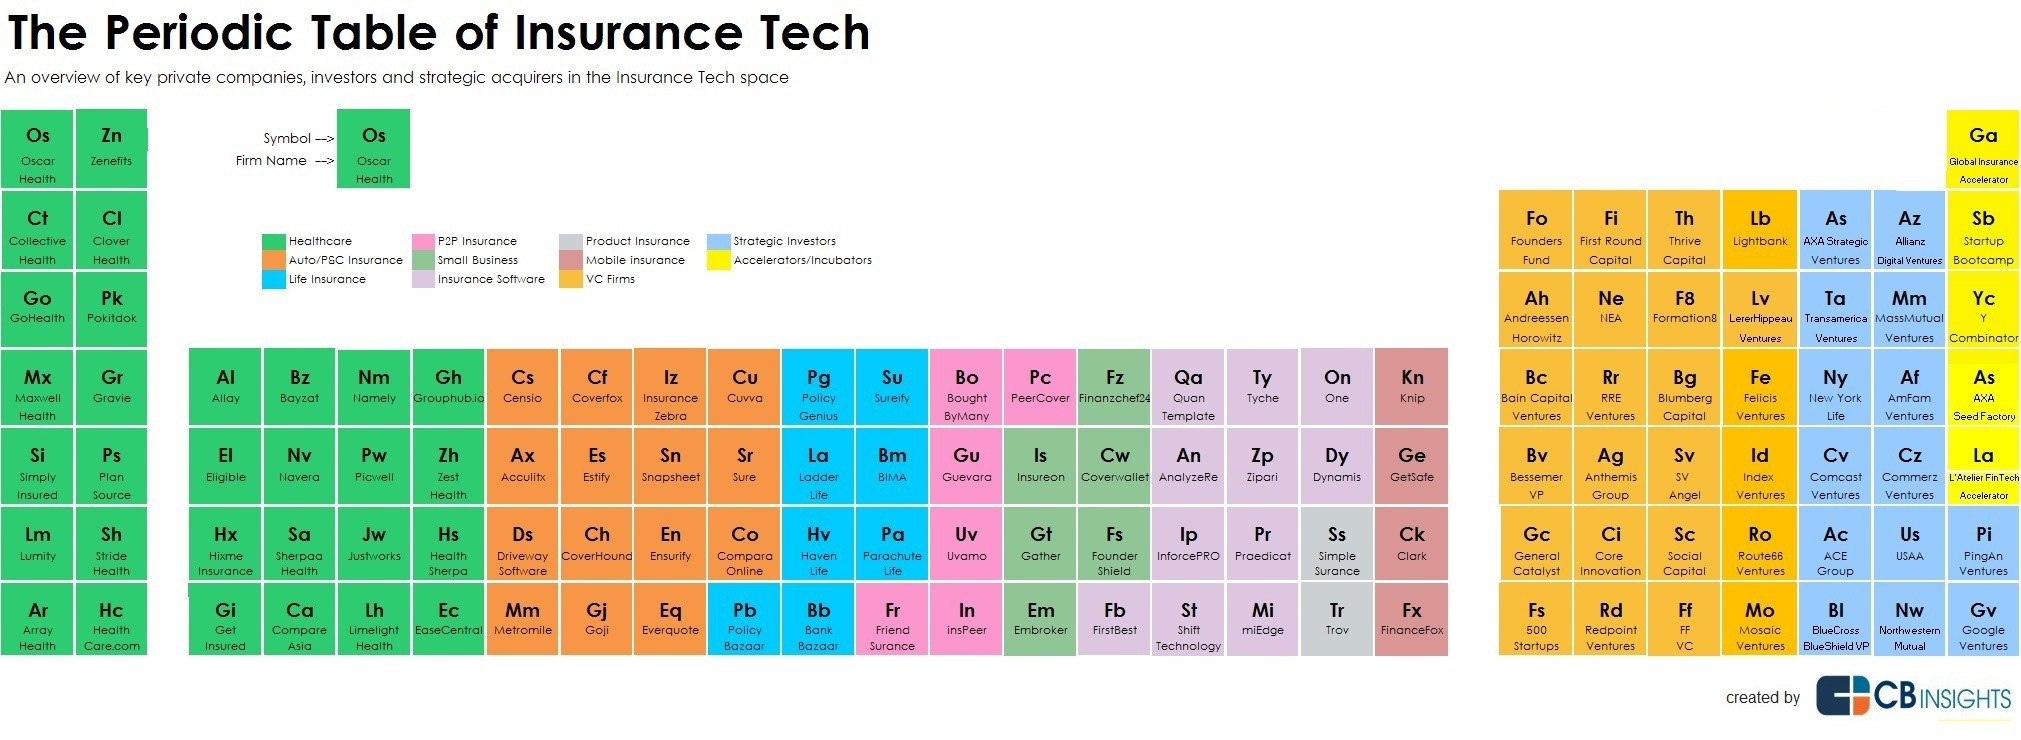 Periodic Table of Insurance Tech